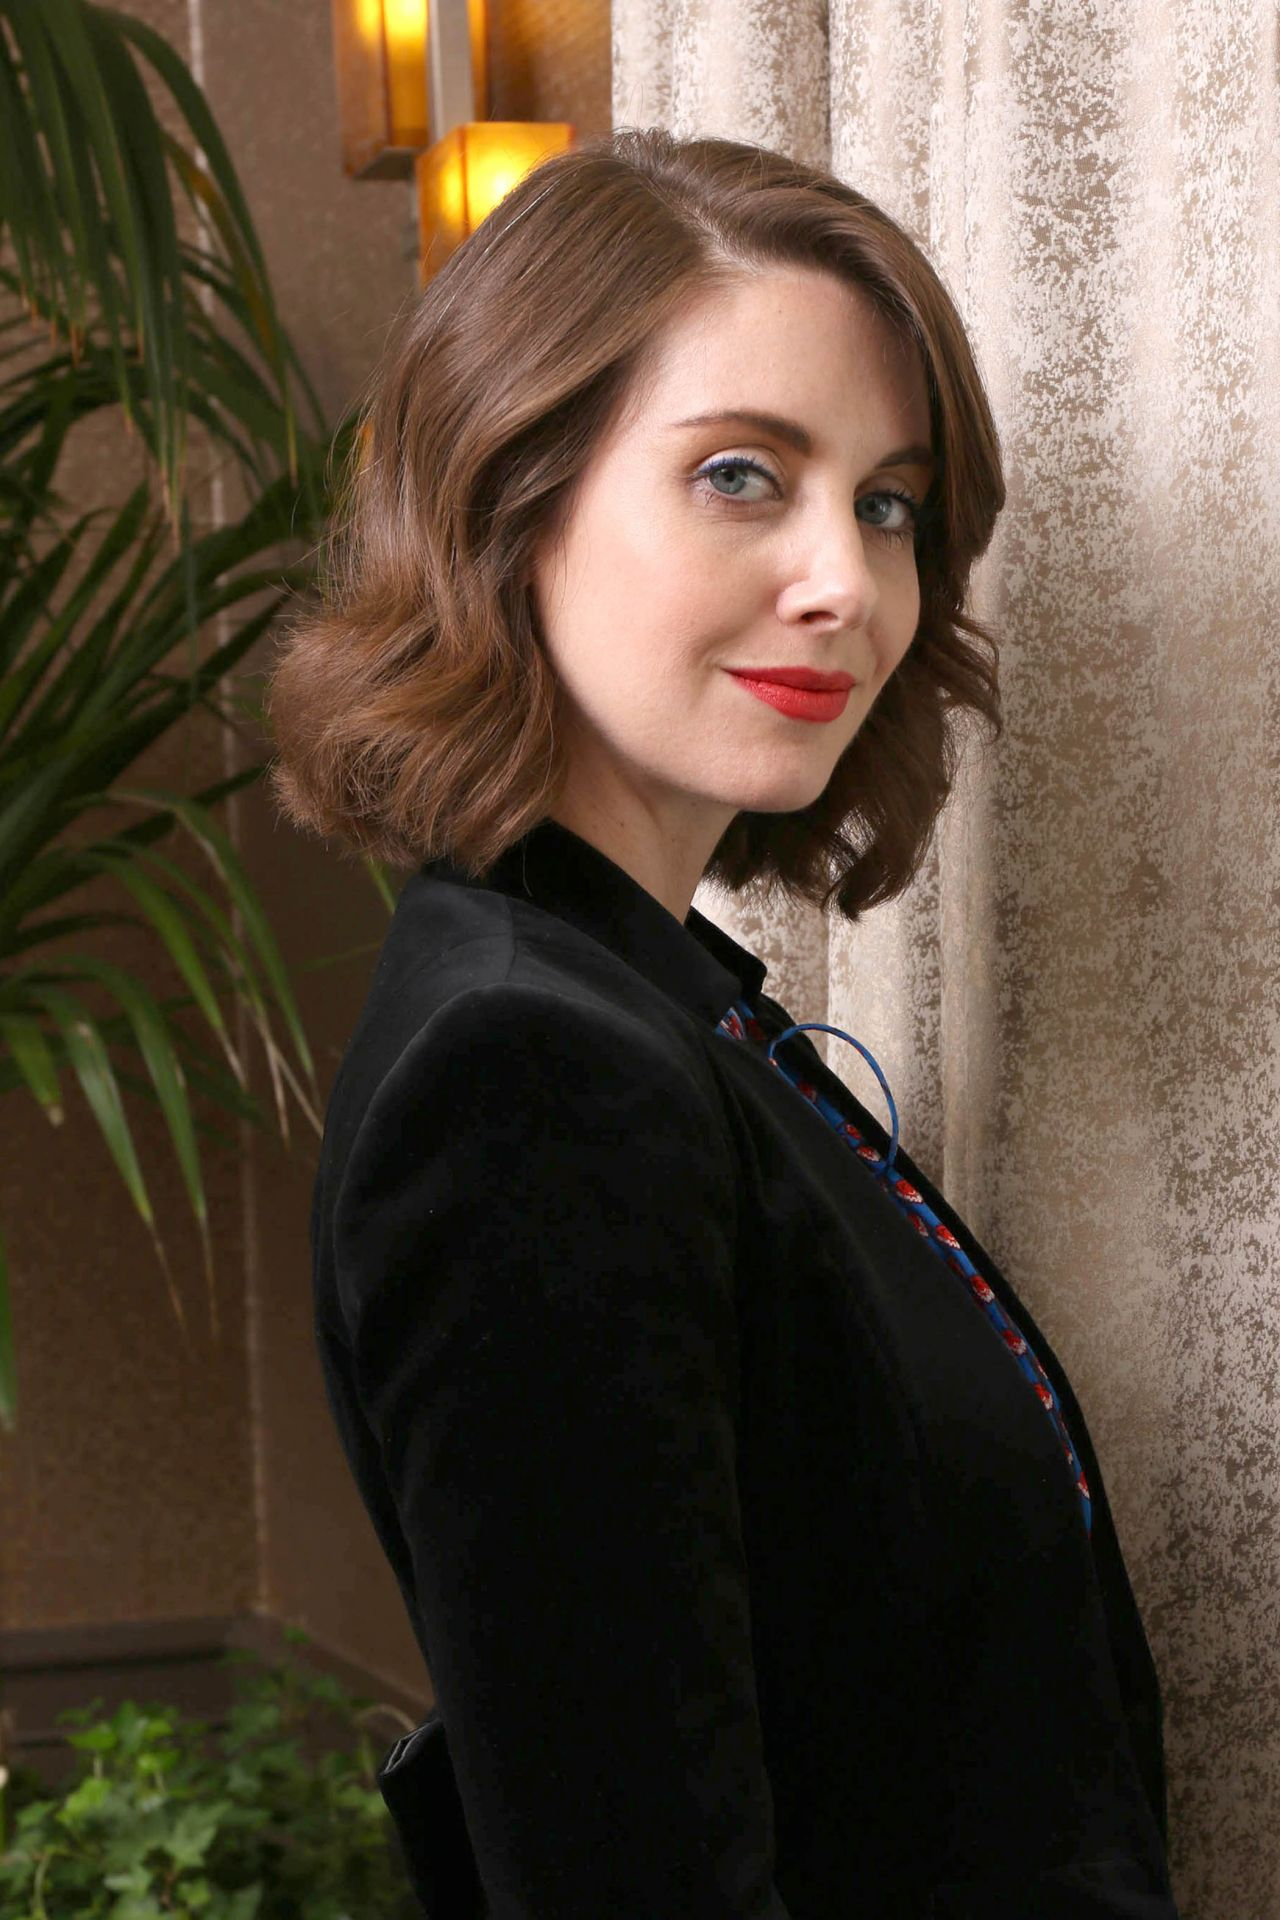 https://celebmafia.com/wp-content/uploads/2018/04/alison-brie-glow-press-conference-in-los-angeles-4.jpg